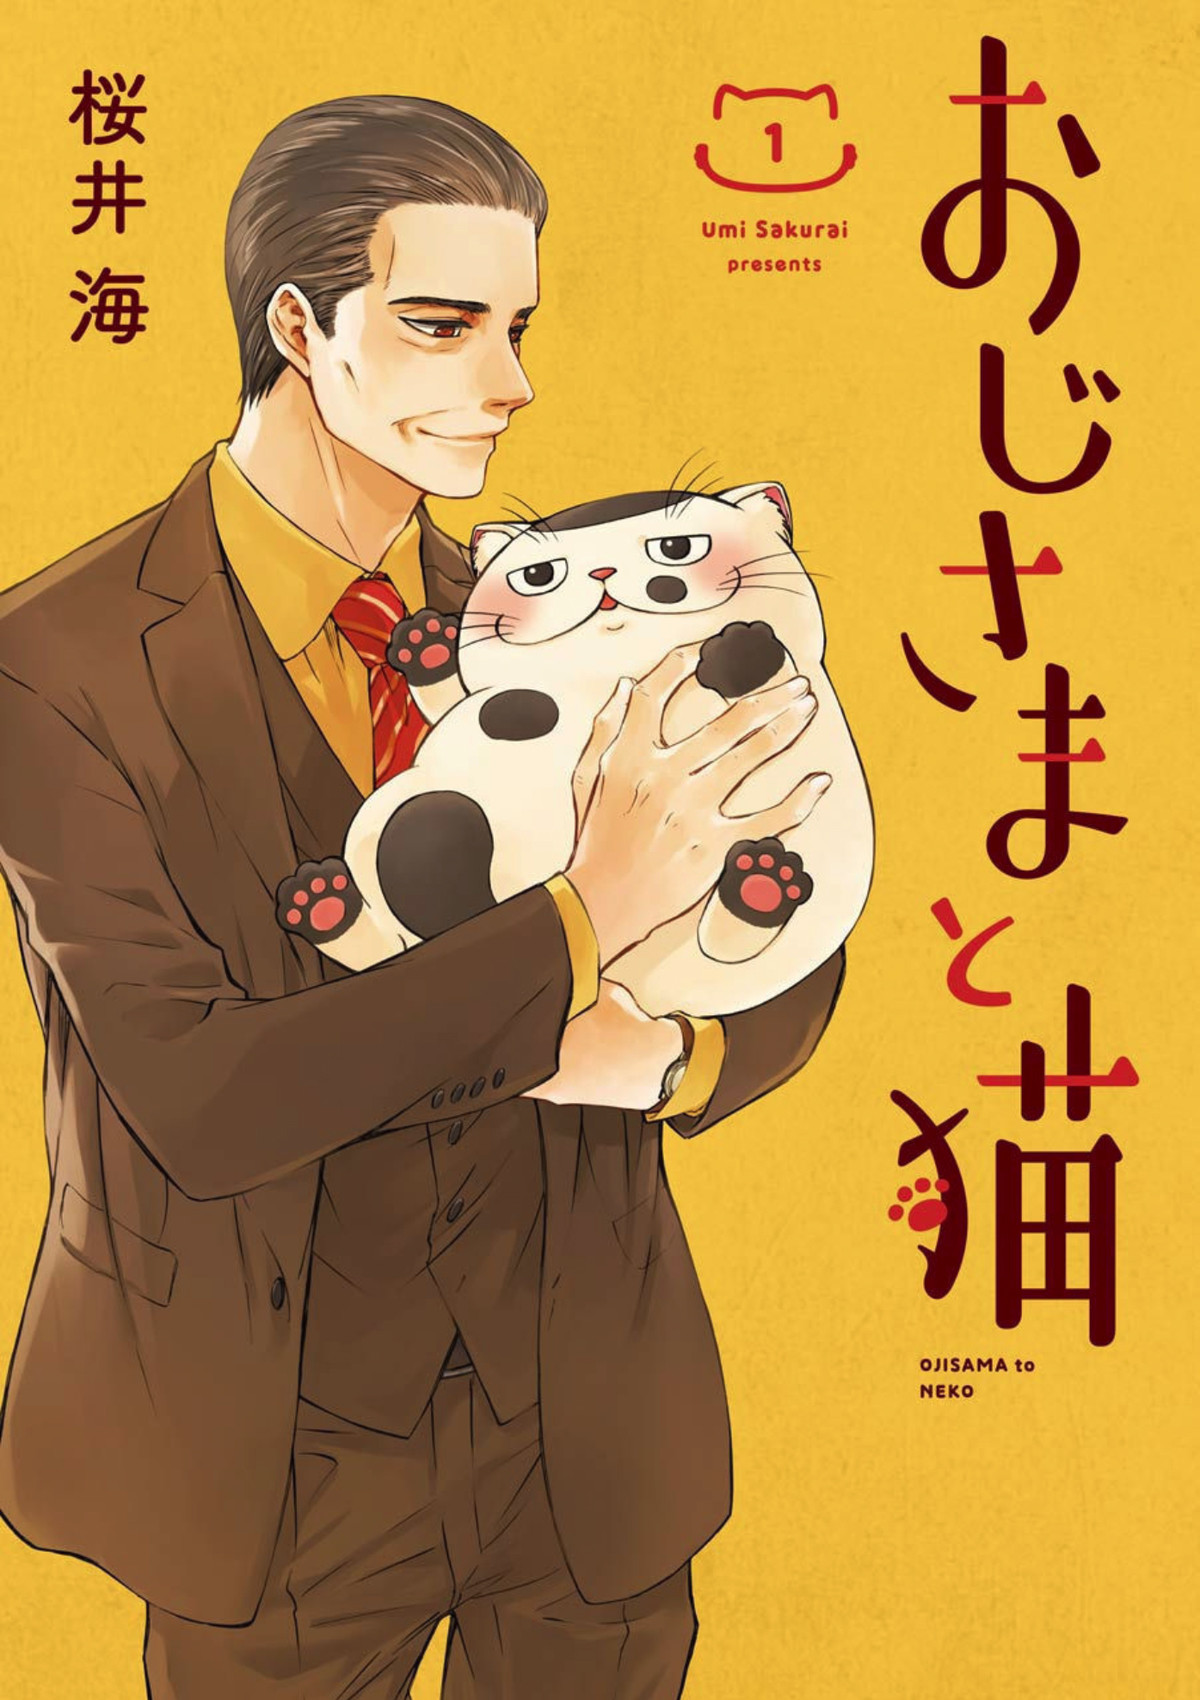 Ojisama to Neko ch 1 - 8. .. While this is adorable, I can't help but feel that the poor guy adopted a cat that looks kinda like Adolf Hitler.